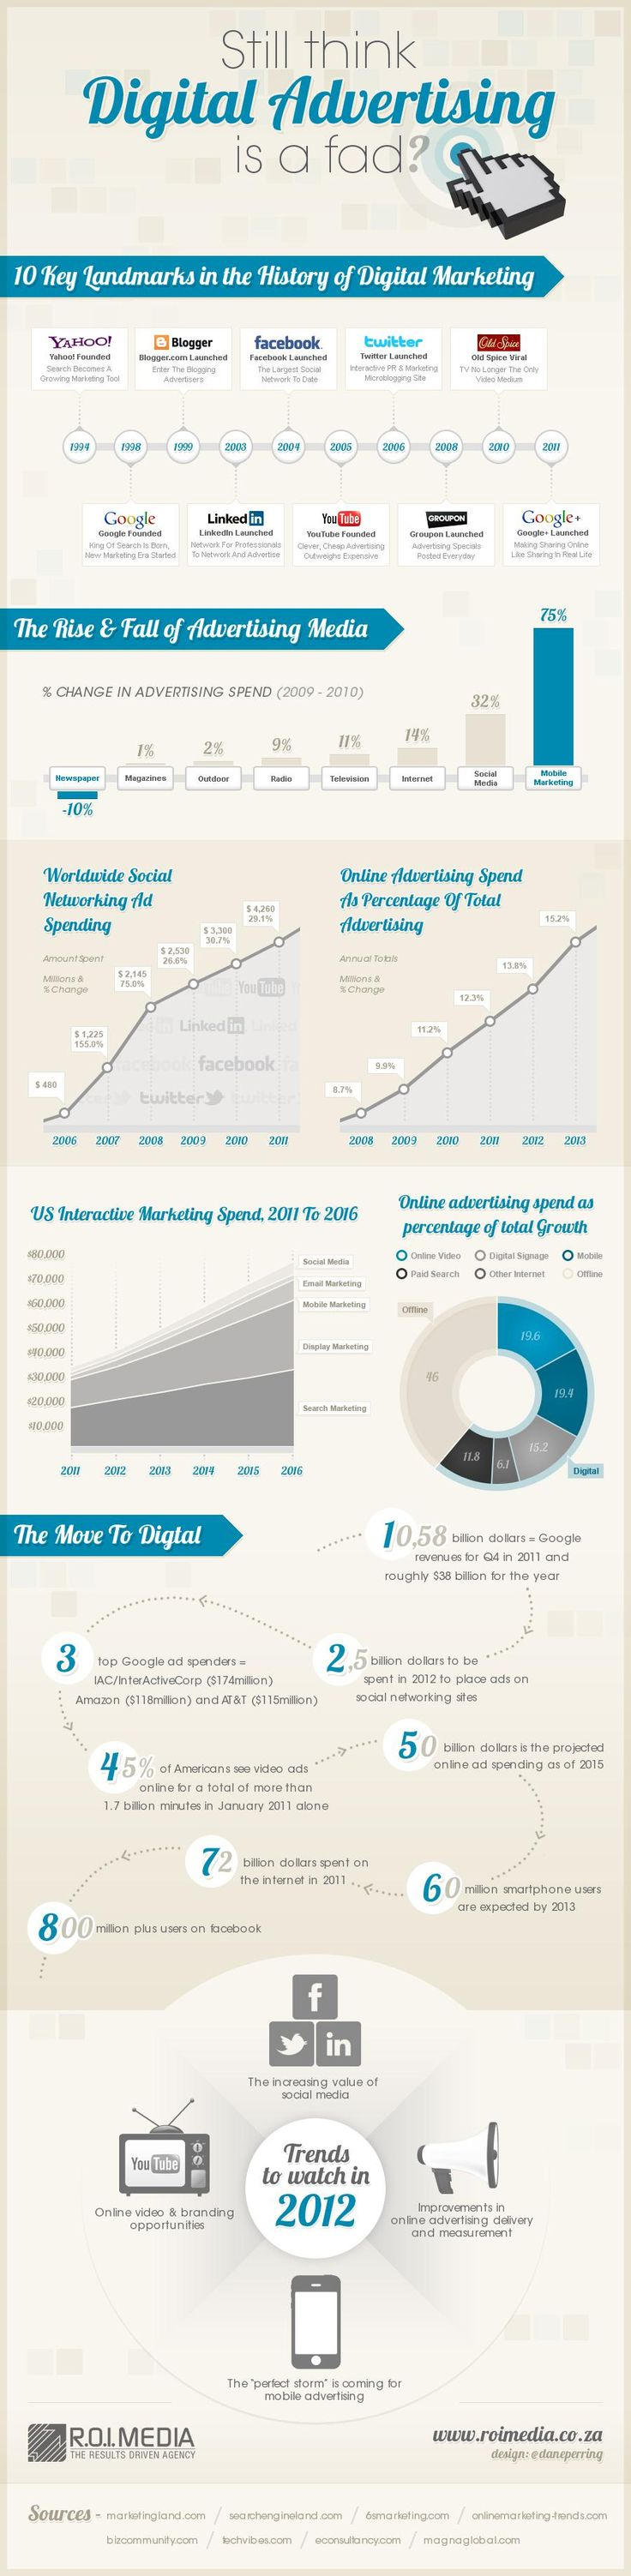 Digital Advertising - trends